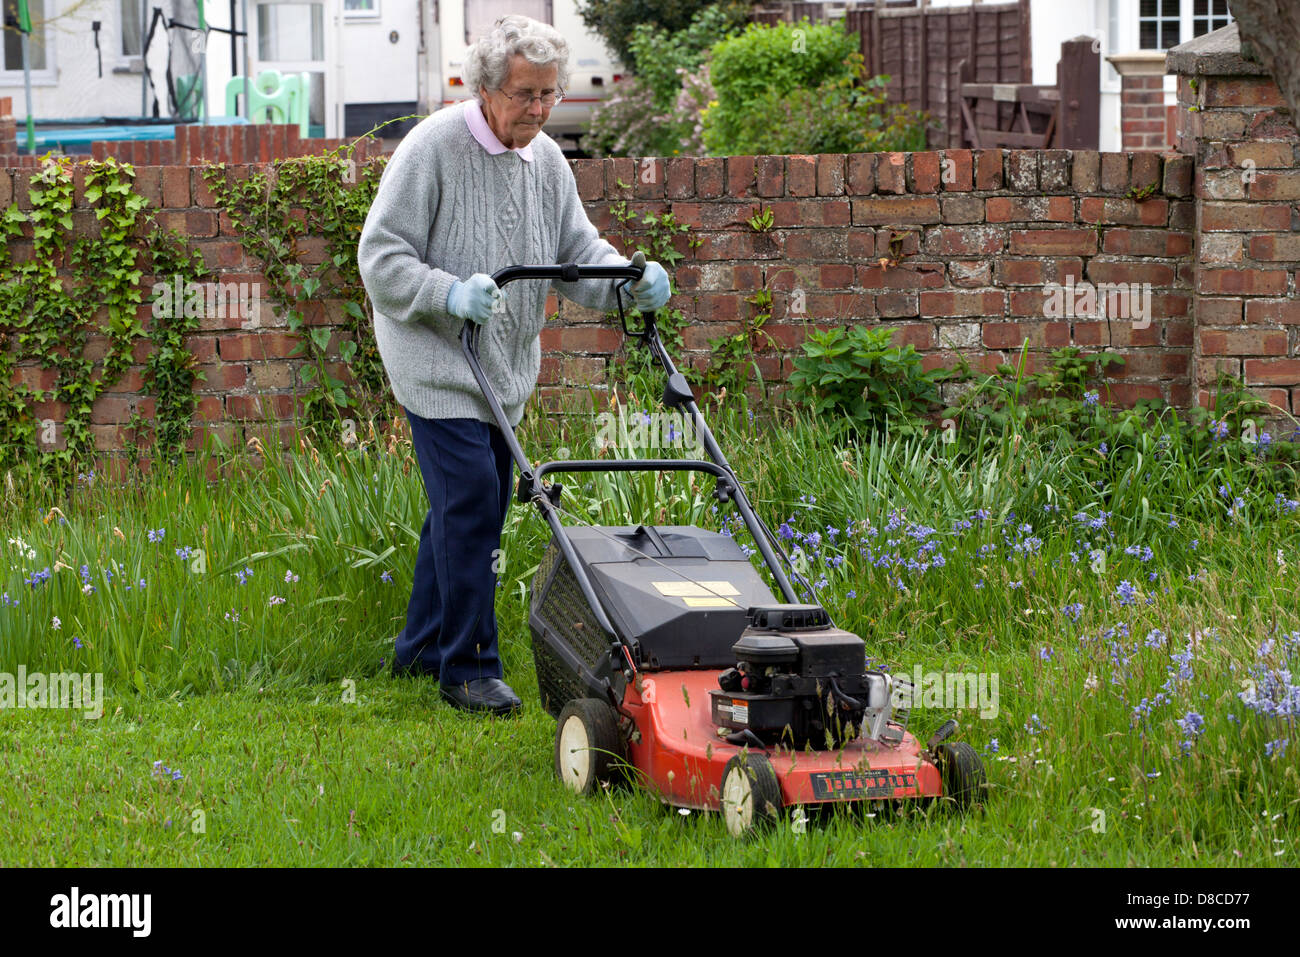 Senior woman mowing a lawn with a petrol lawn mower - Stock Image